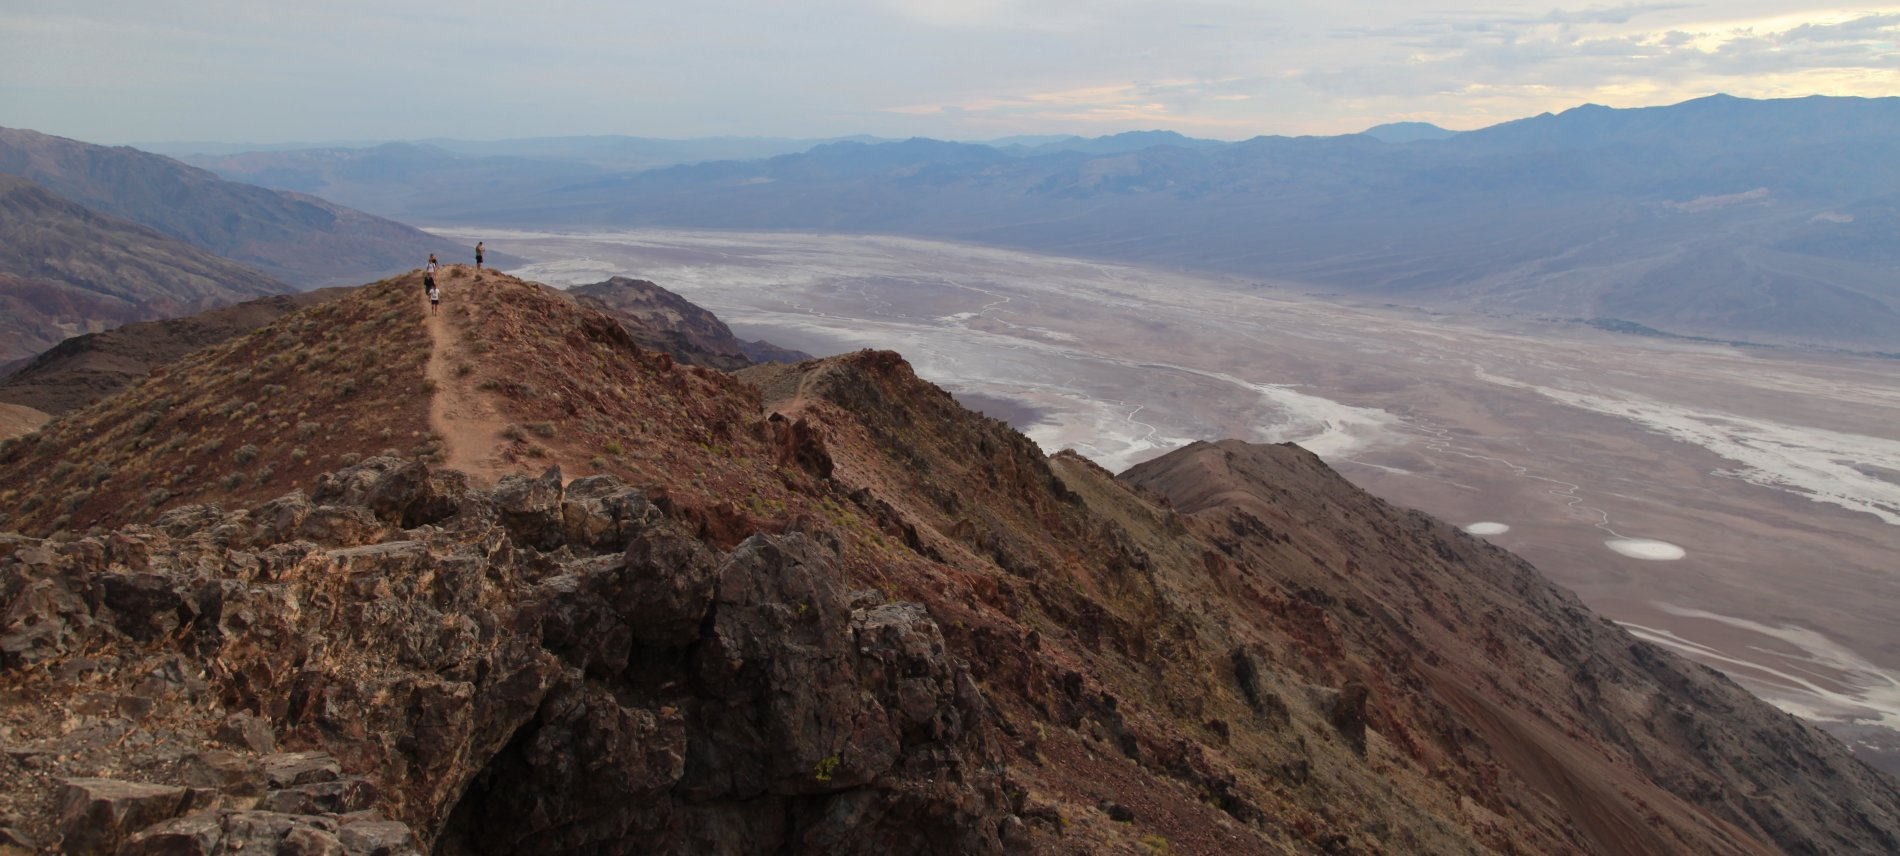 IMG_1096.JPG: Death Valley